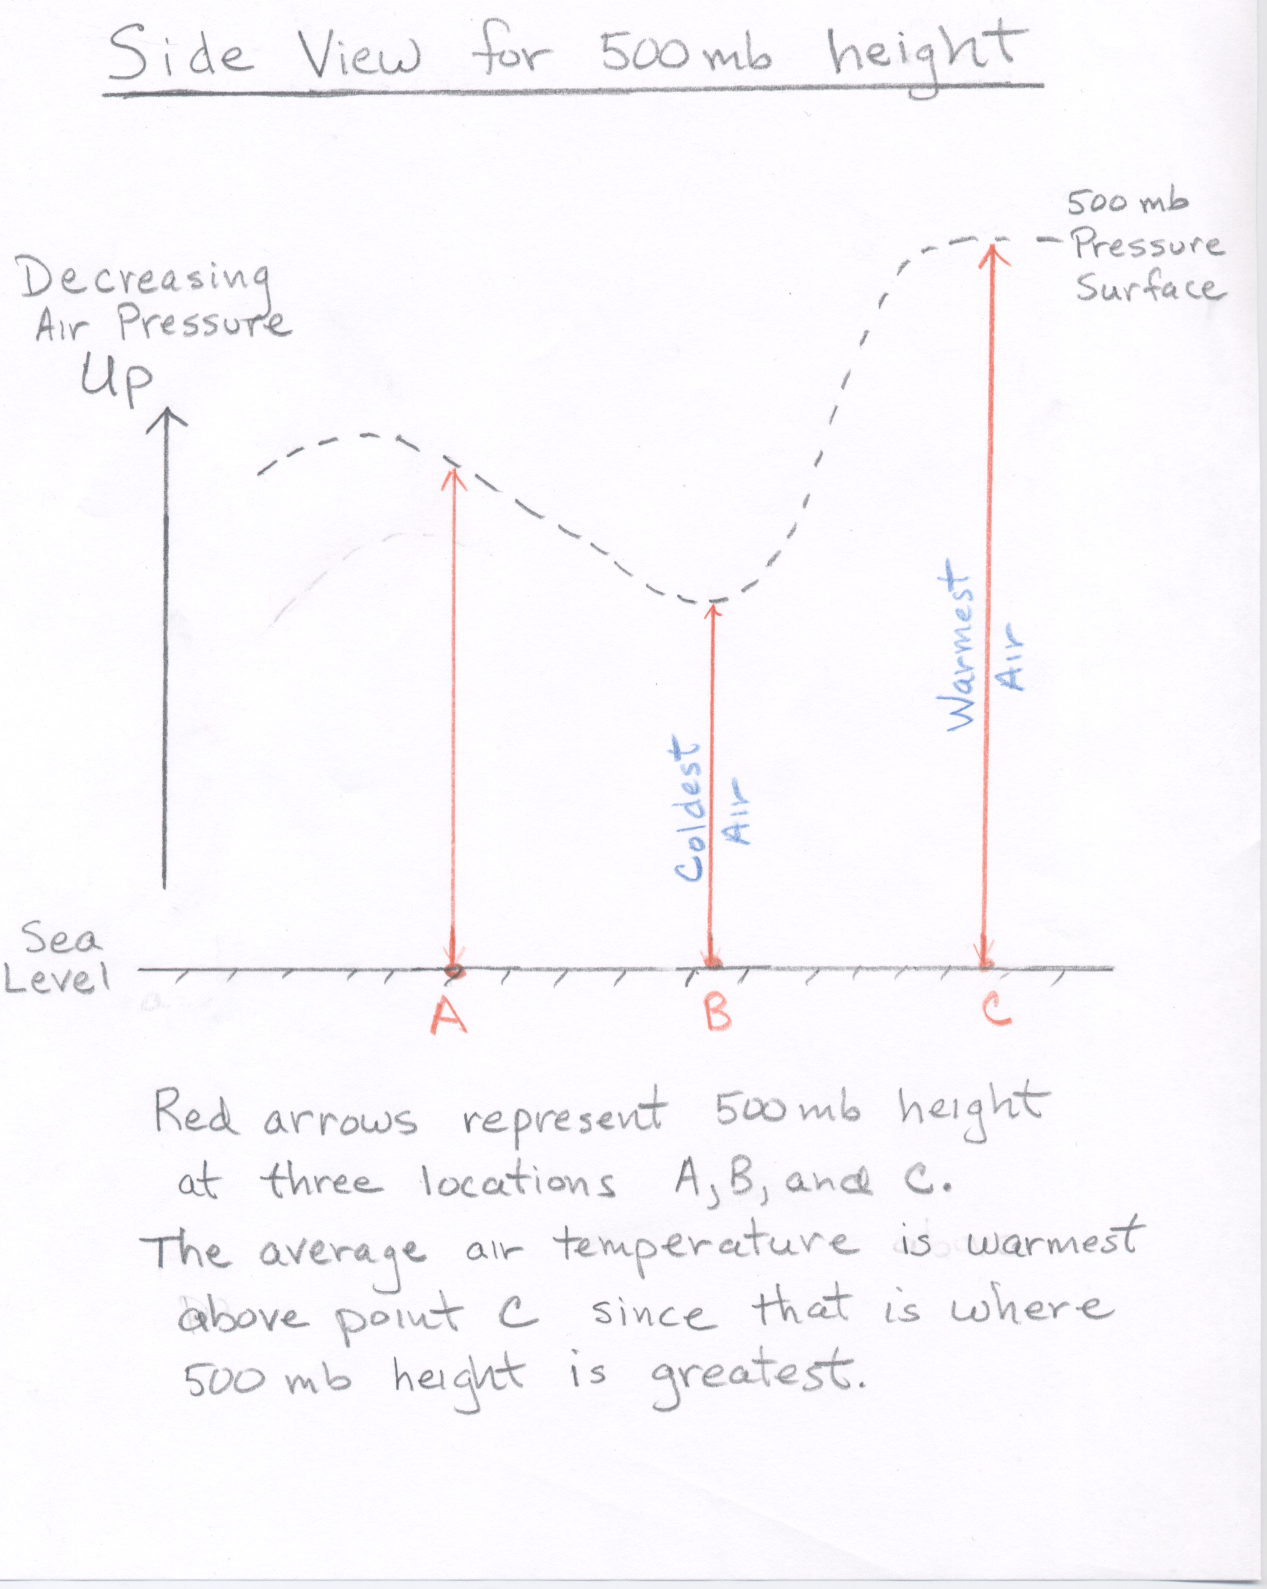 Atmo336 Spring 2010 Here Are Some Useful Diagrams To Help You With Measuring Your Windows We Briefly Review That Concept If Warm A Column Of Air It Expands Therefore Pressure Decreases More Slowly